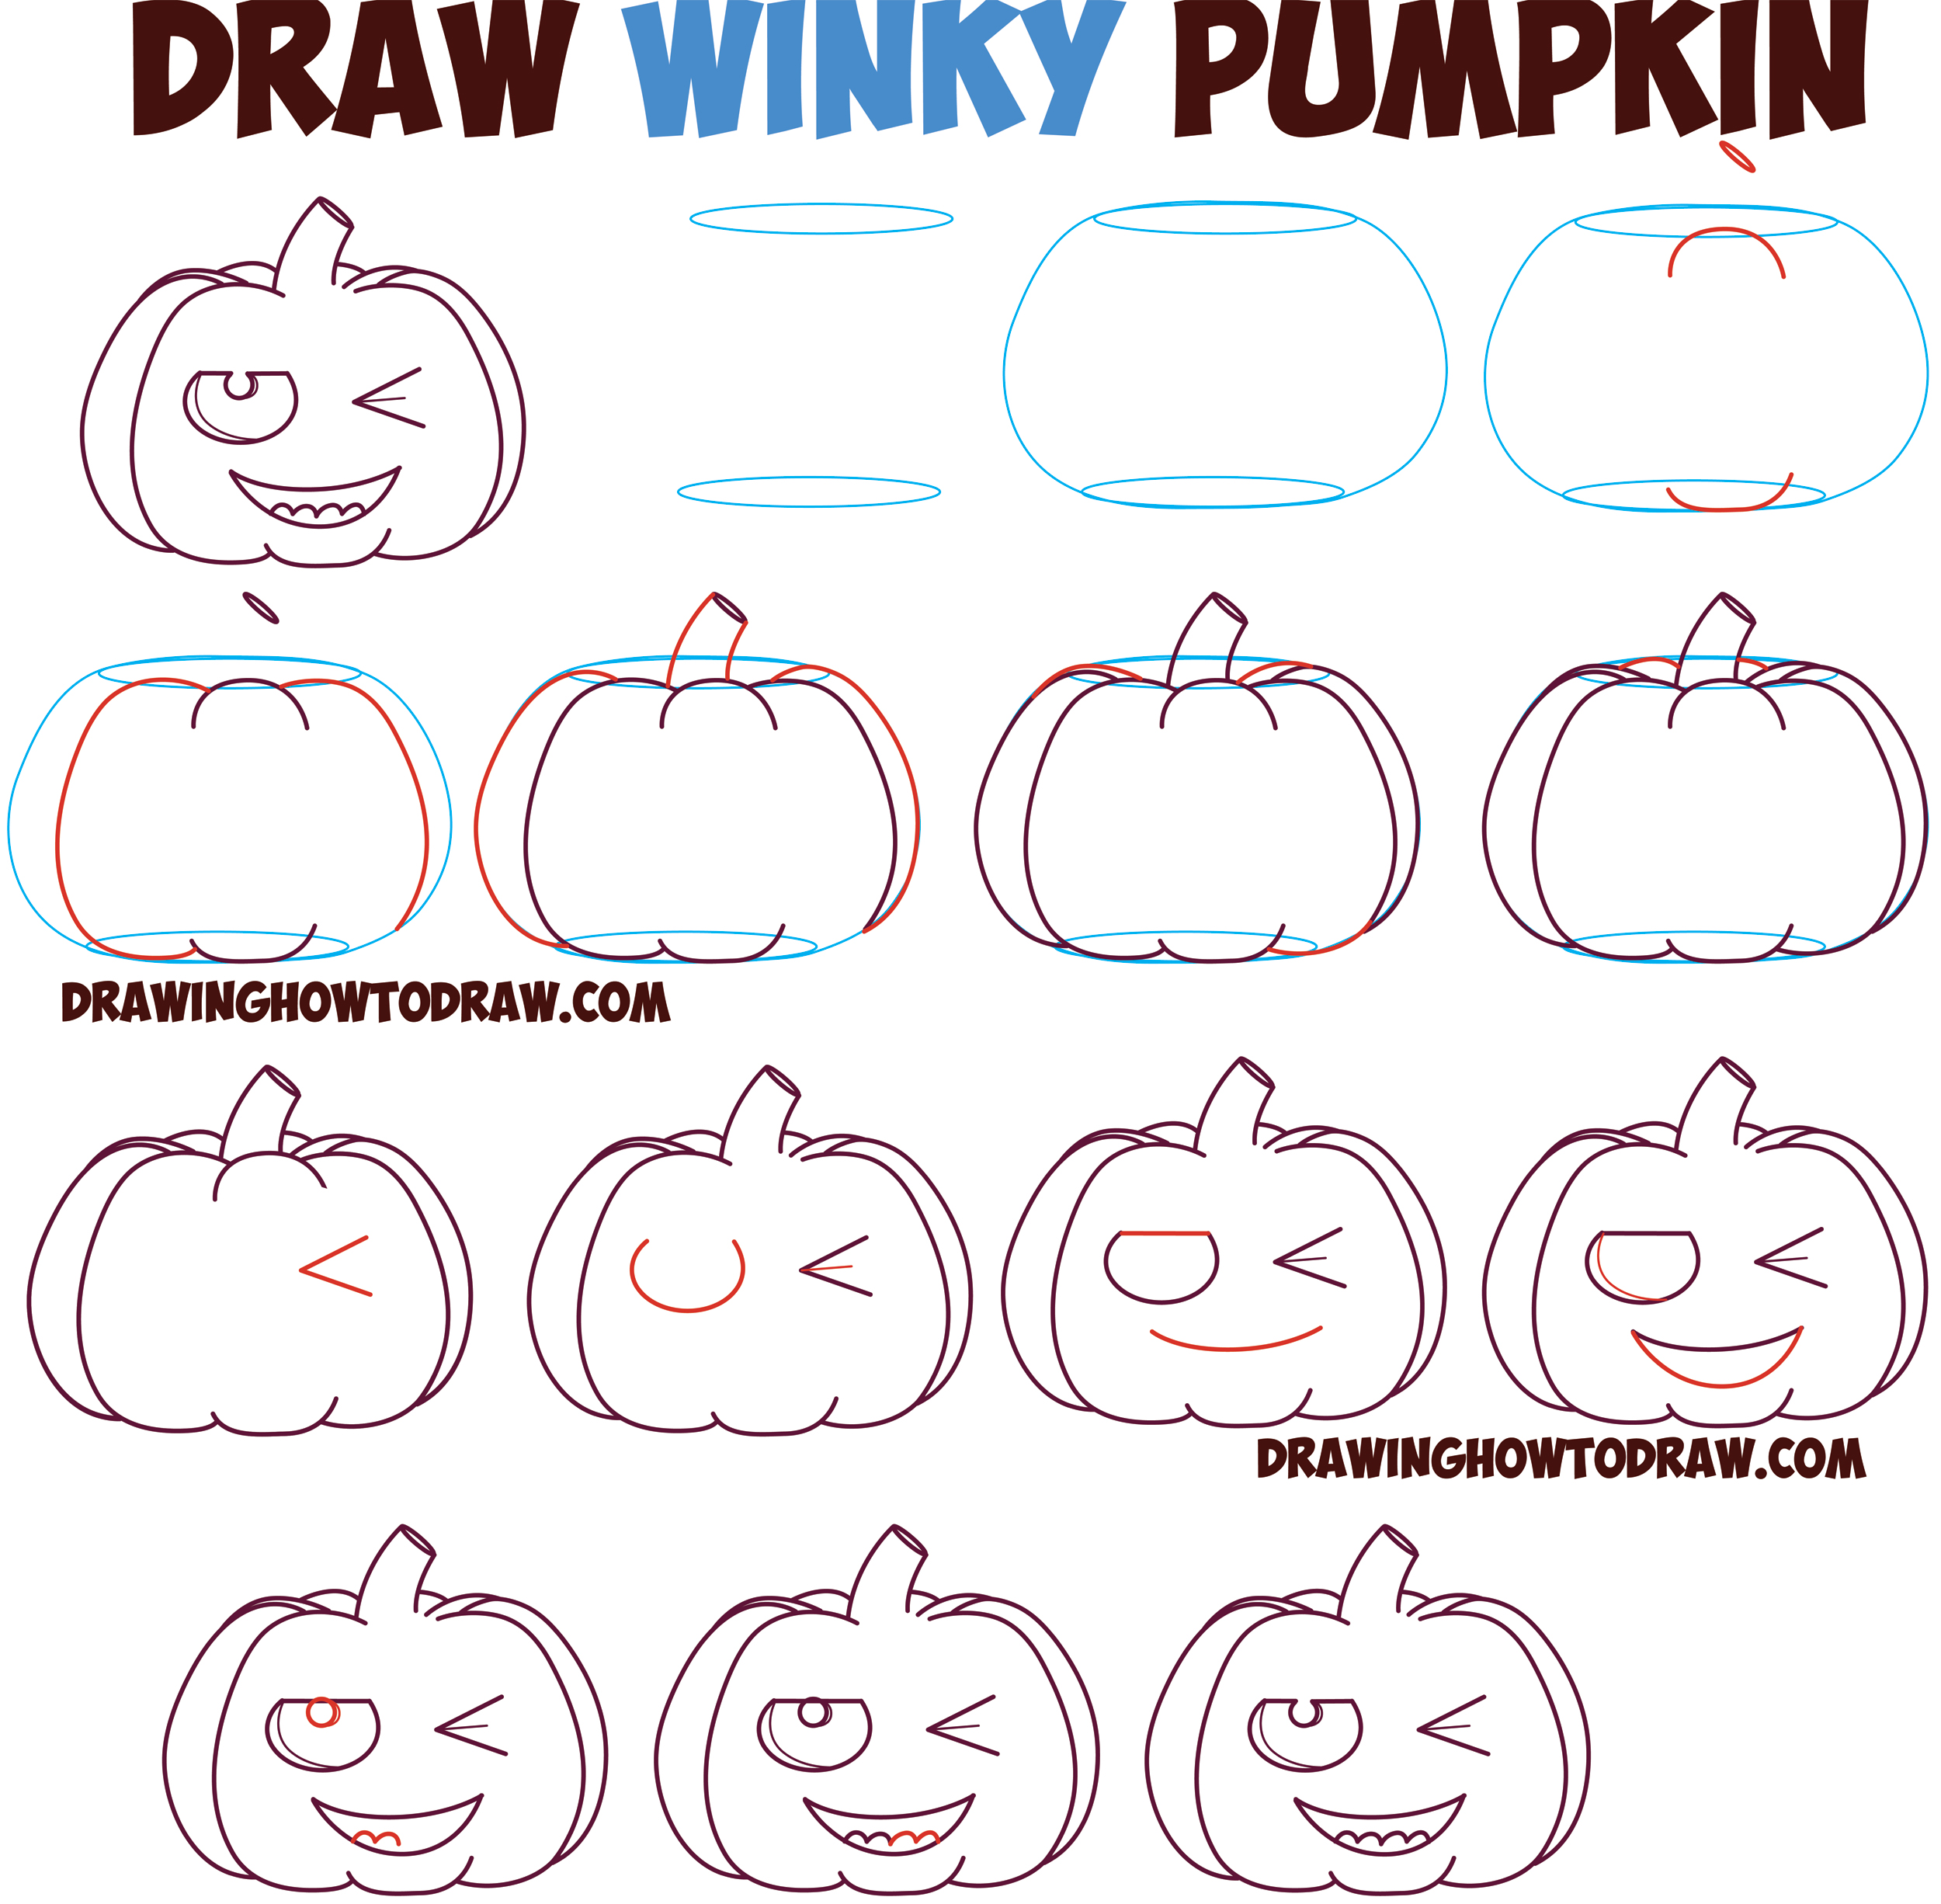 How to Draw Cartoon Pumpkin / Jack O'Lantern : Winking Winky Eye Smiling